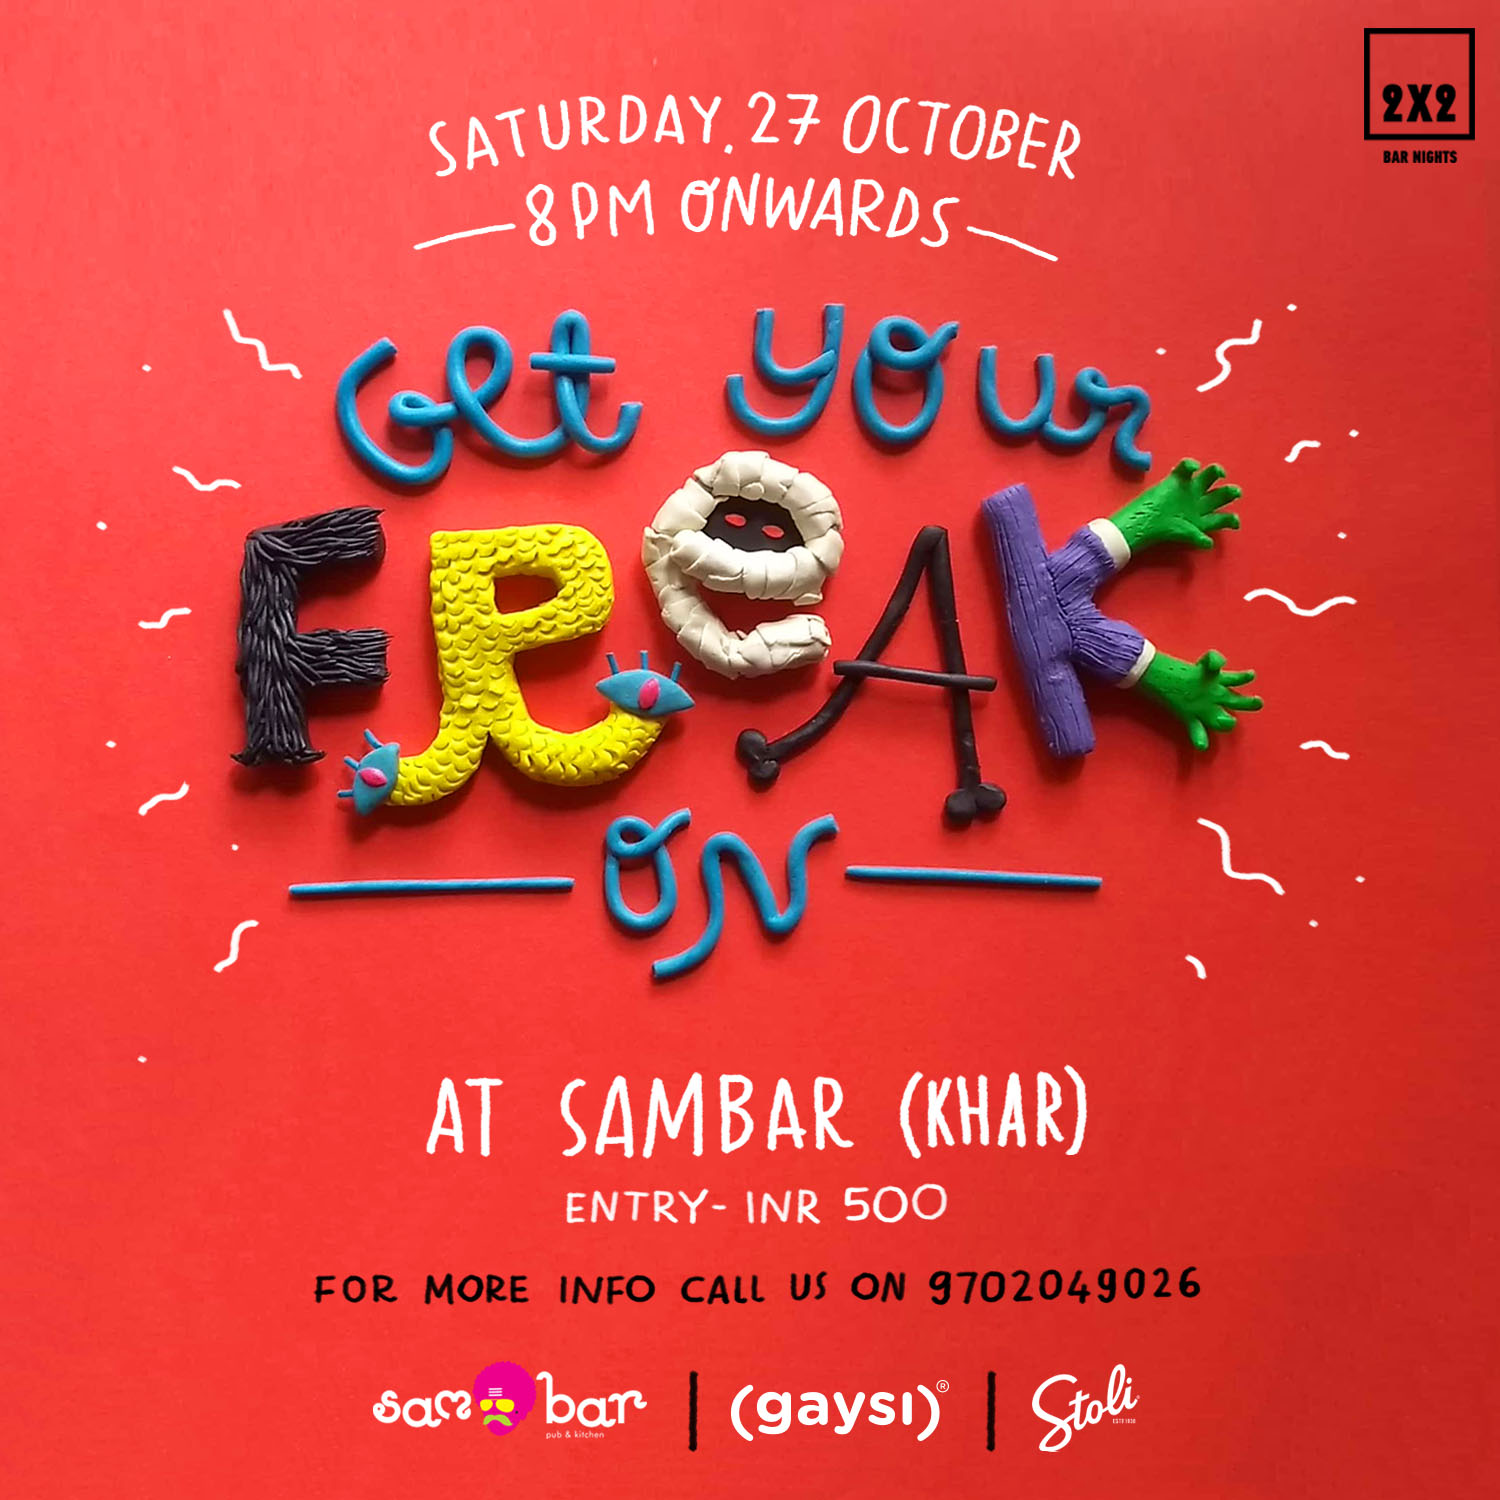 Gaysi Presents 2×2 Bar Nights: Get Your Freak On Party On Saturday, 27th October.